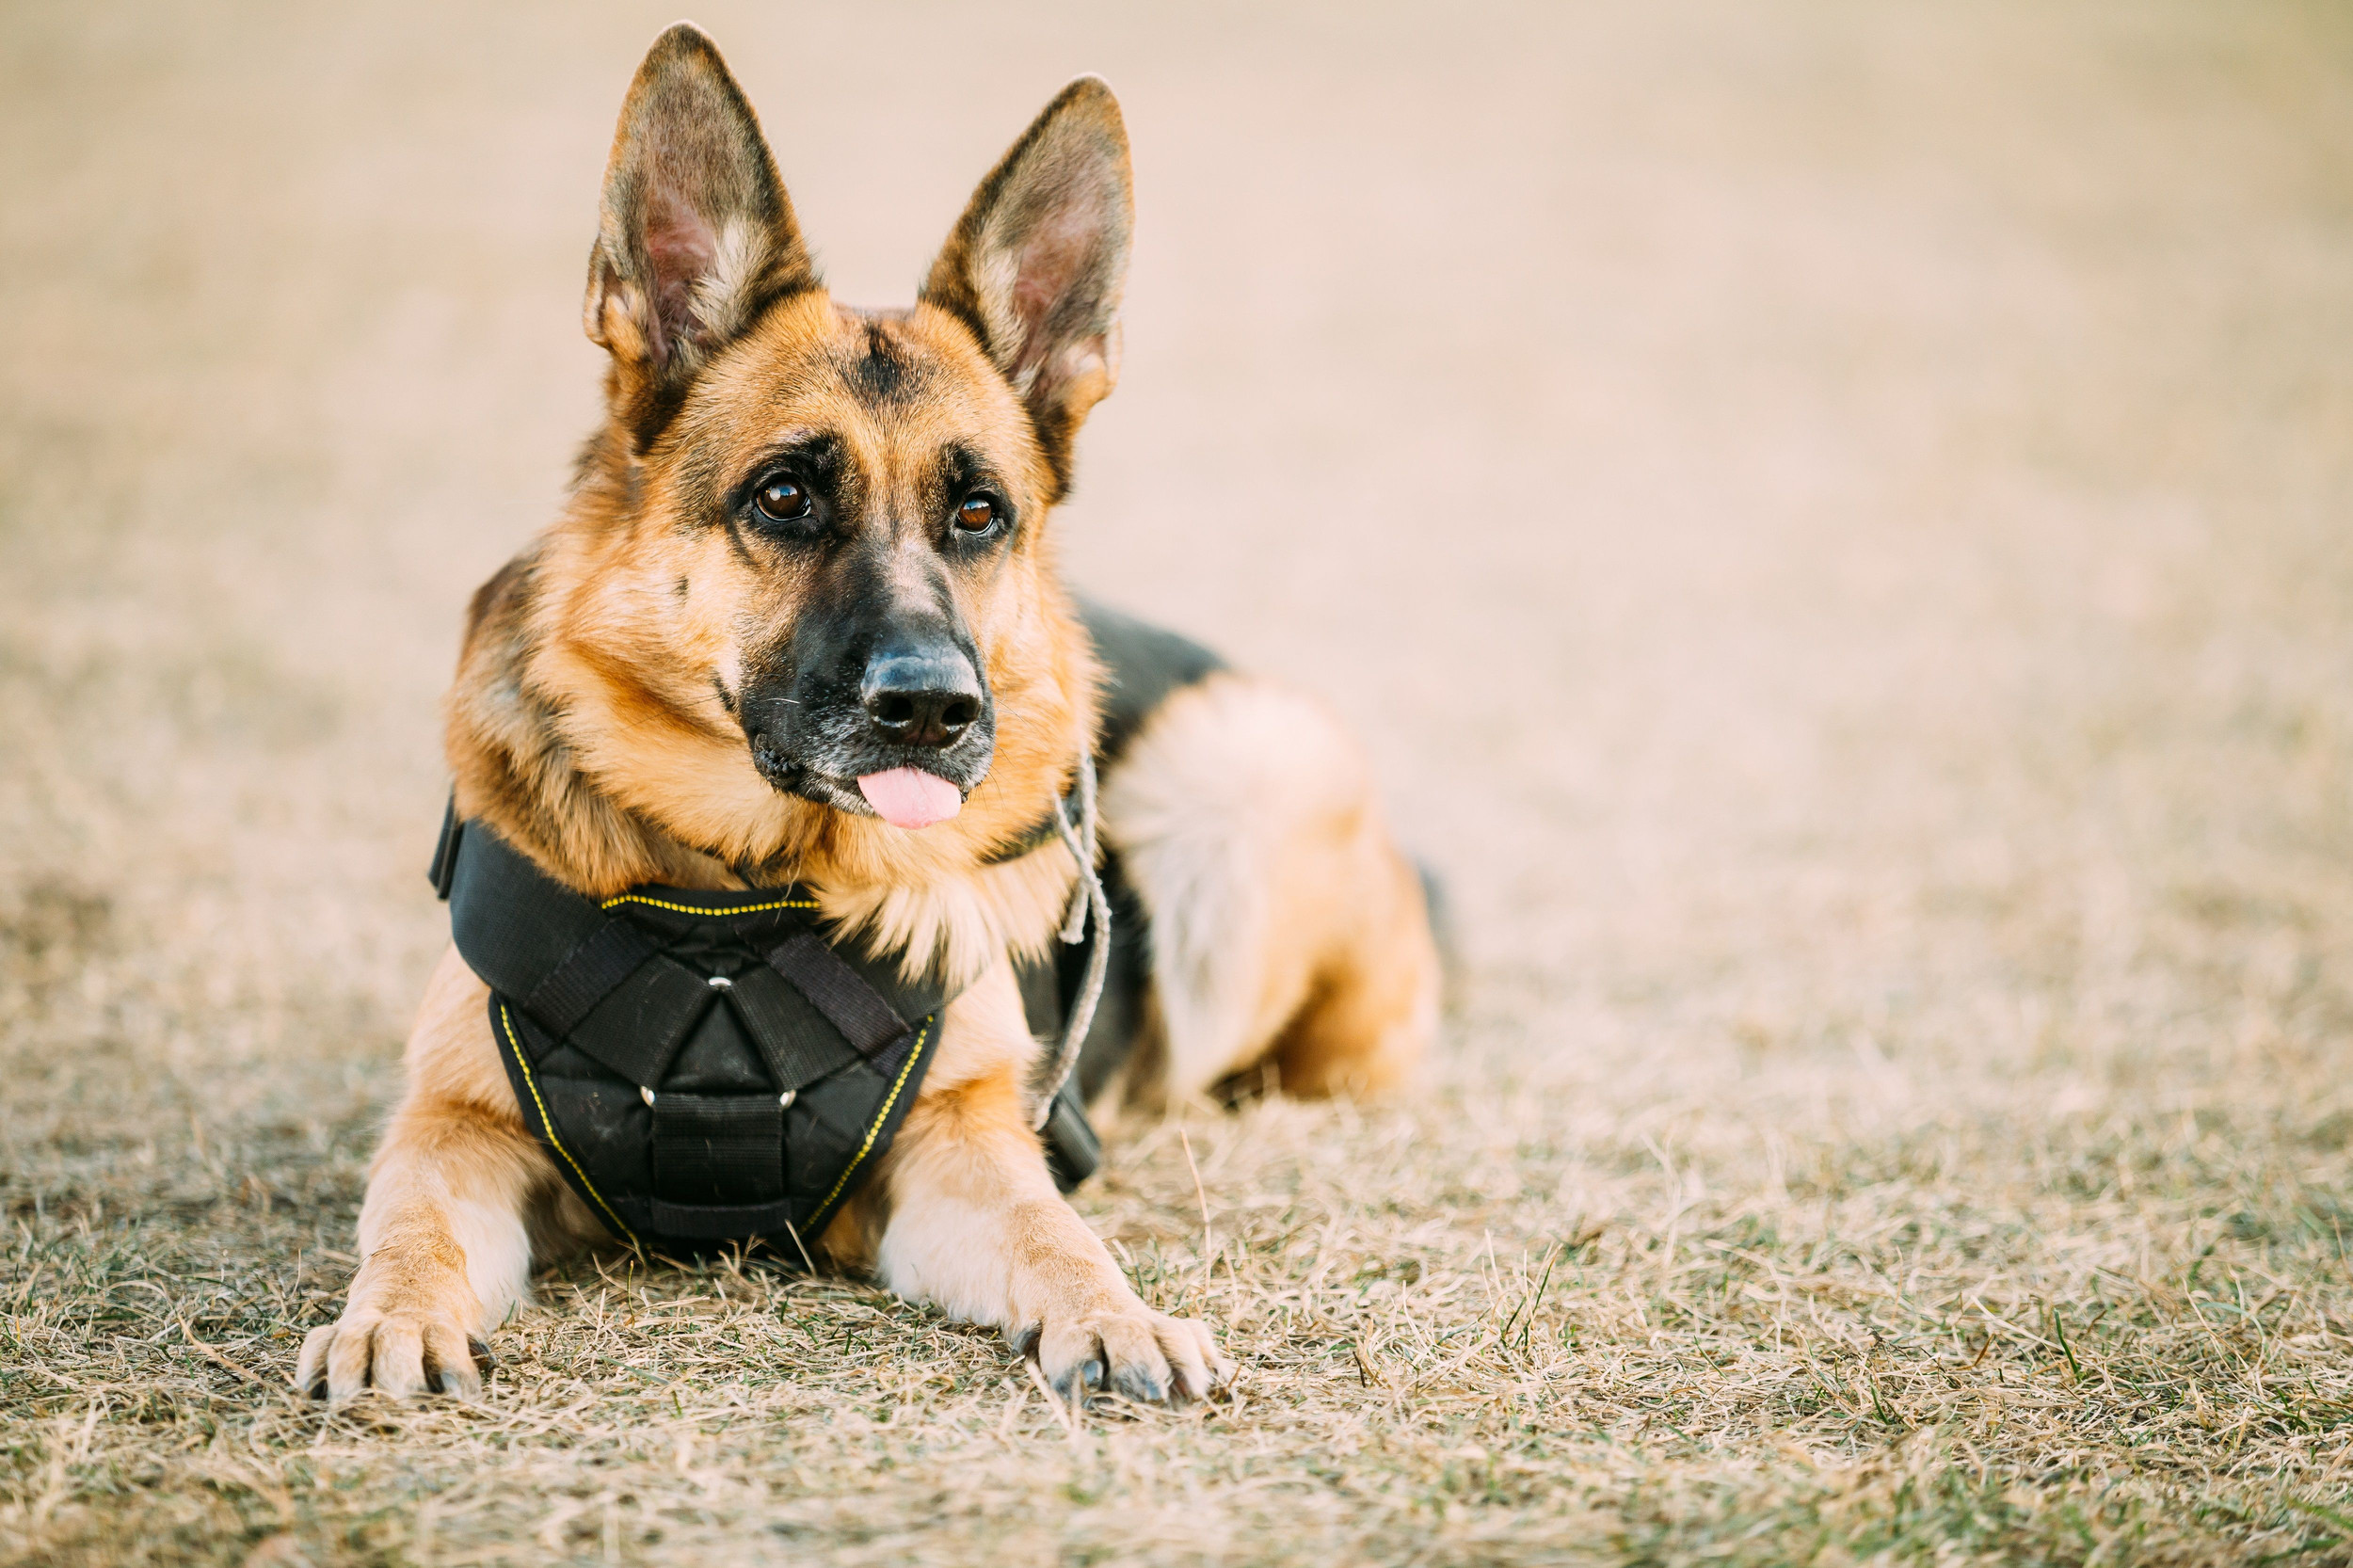 Texas congressman introduces bill to care for military and law enforcement dogs